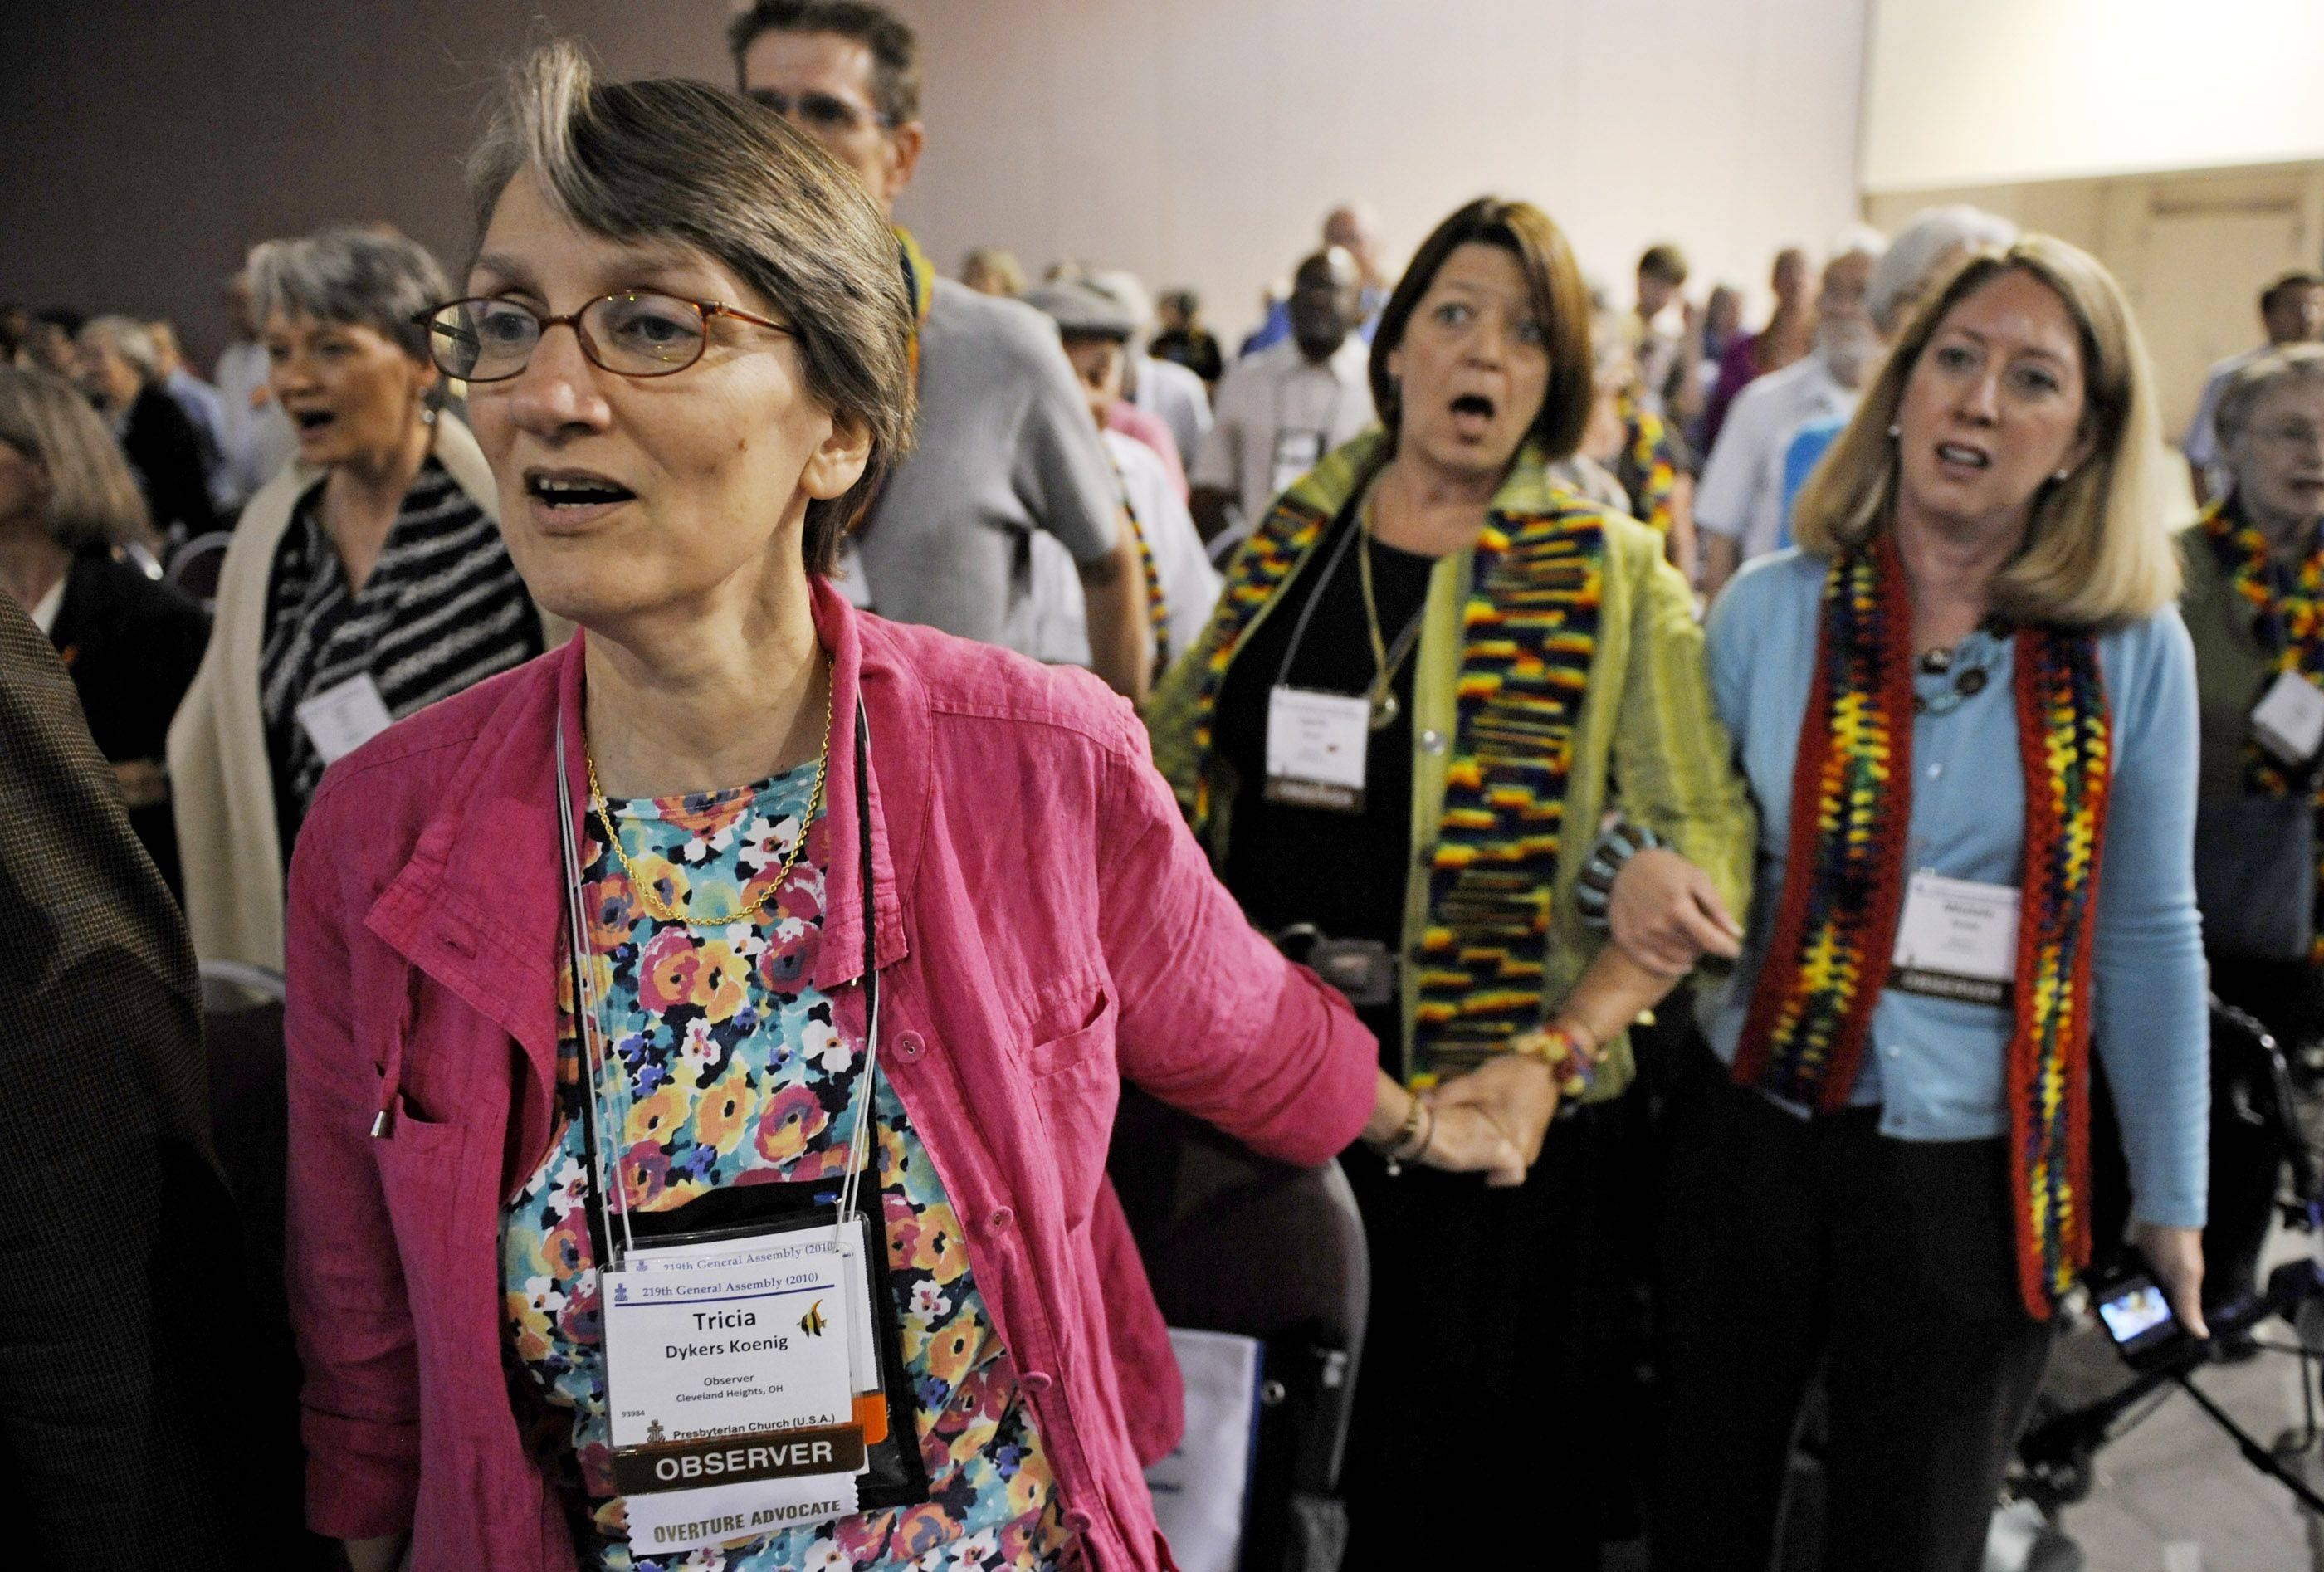 Observers Tricia Dykes Koenig, left, and Michelle Ready, right, and Laurie Kraus join in a hymn after the General Assembly of the Presbyterian Church last year in Minneapolis voted to approve lifting the church's ban on ordaining noncelibate gays and lesbians as clergy.